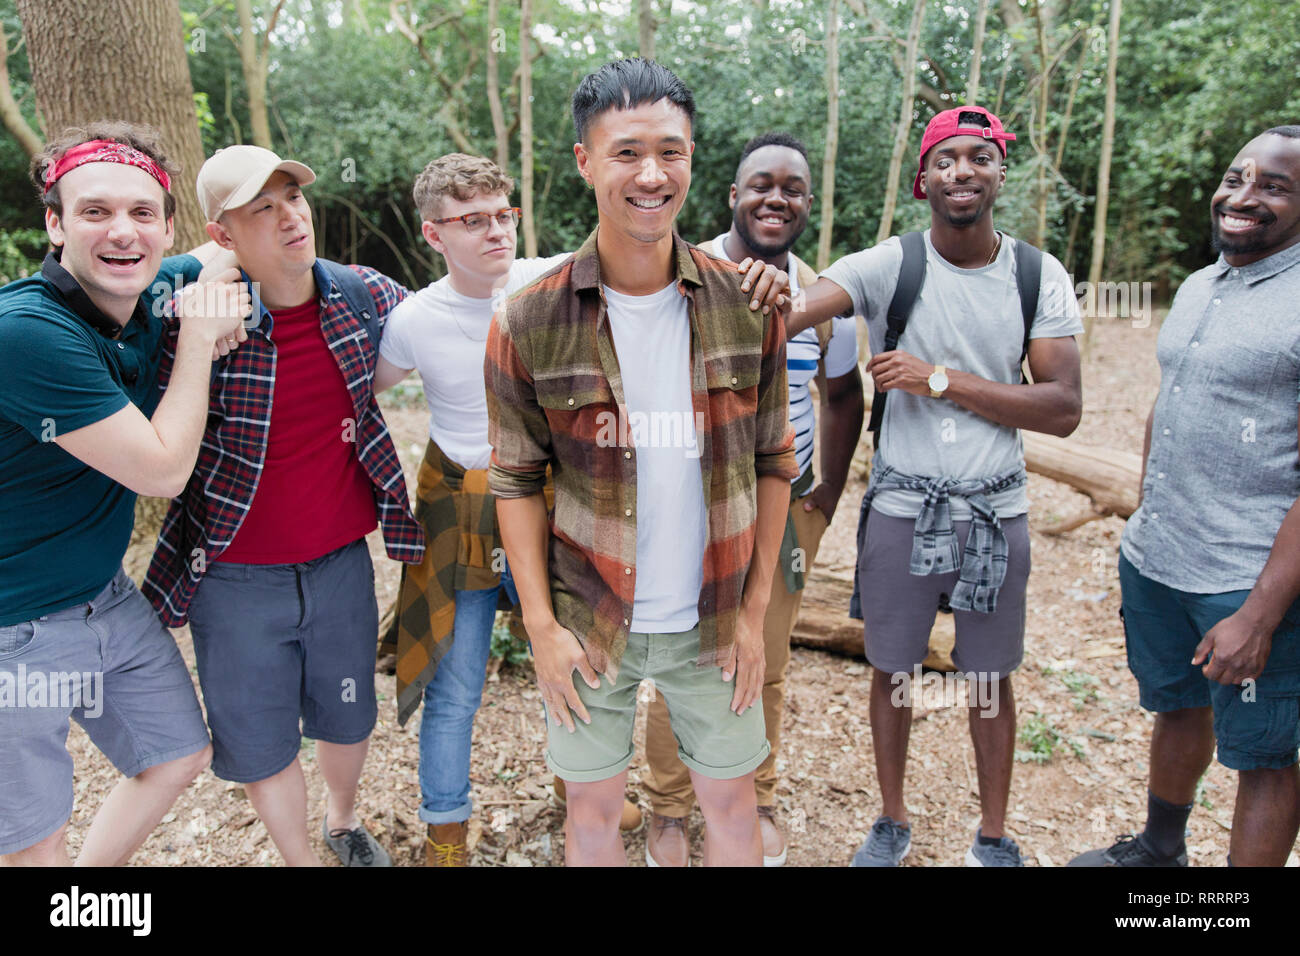 Portrait happy, carefree mens group hiking in woods - Stock Image